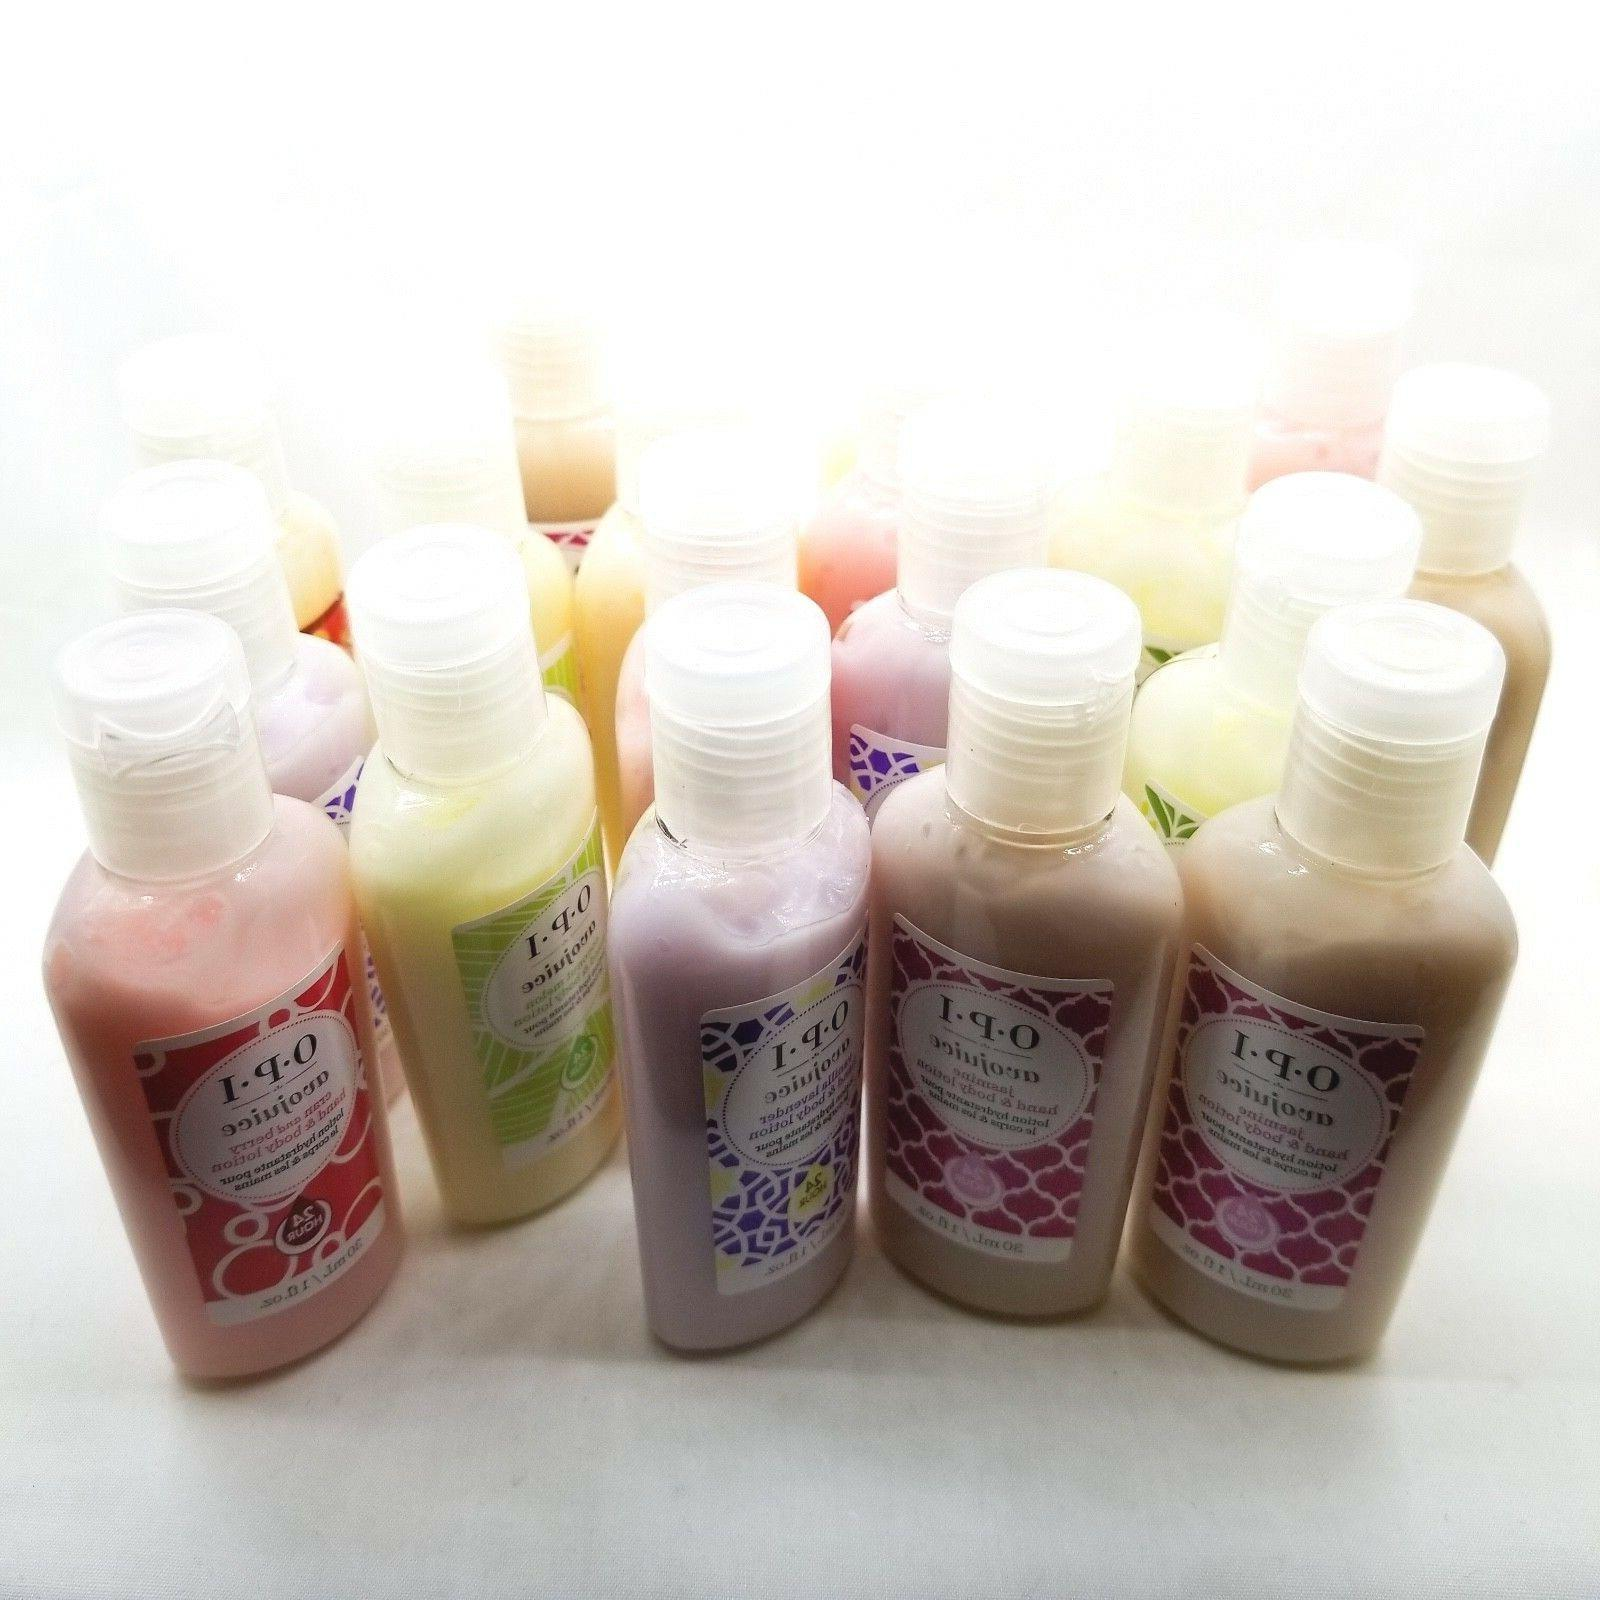 OPI Avojuice Skin Quenchers Hand and body LOTION MINI -> Pick